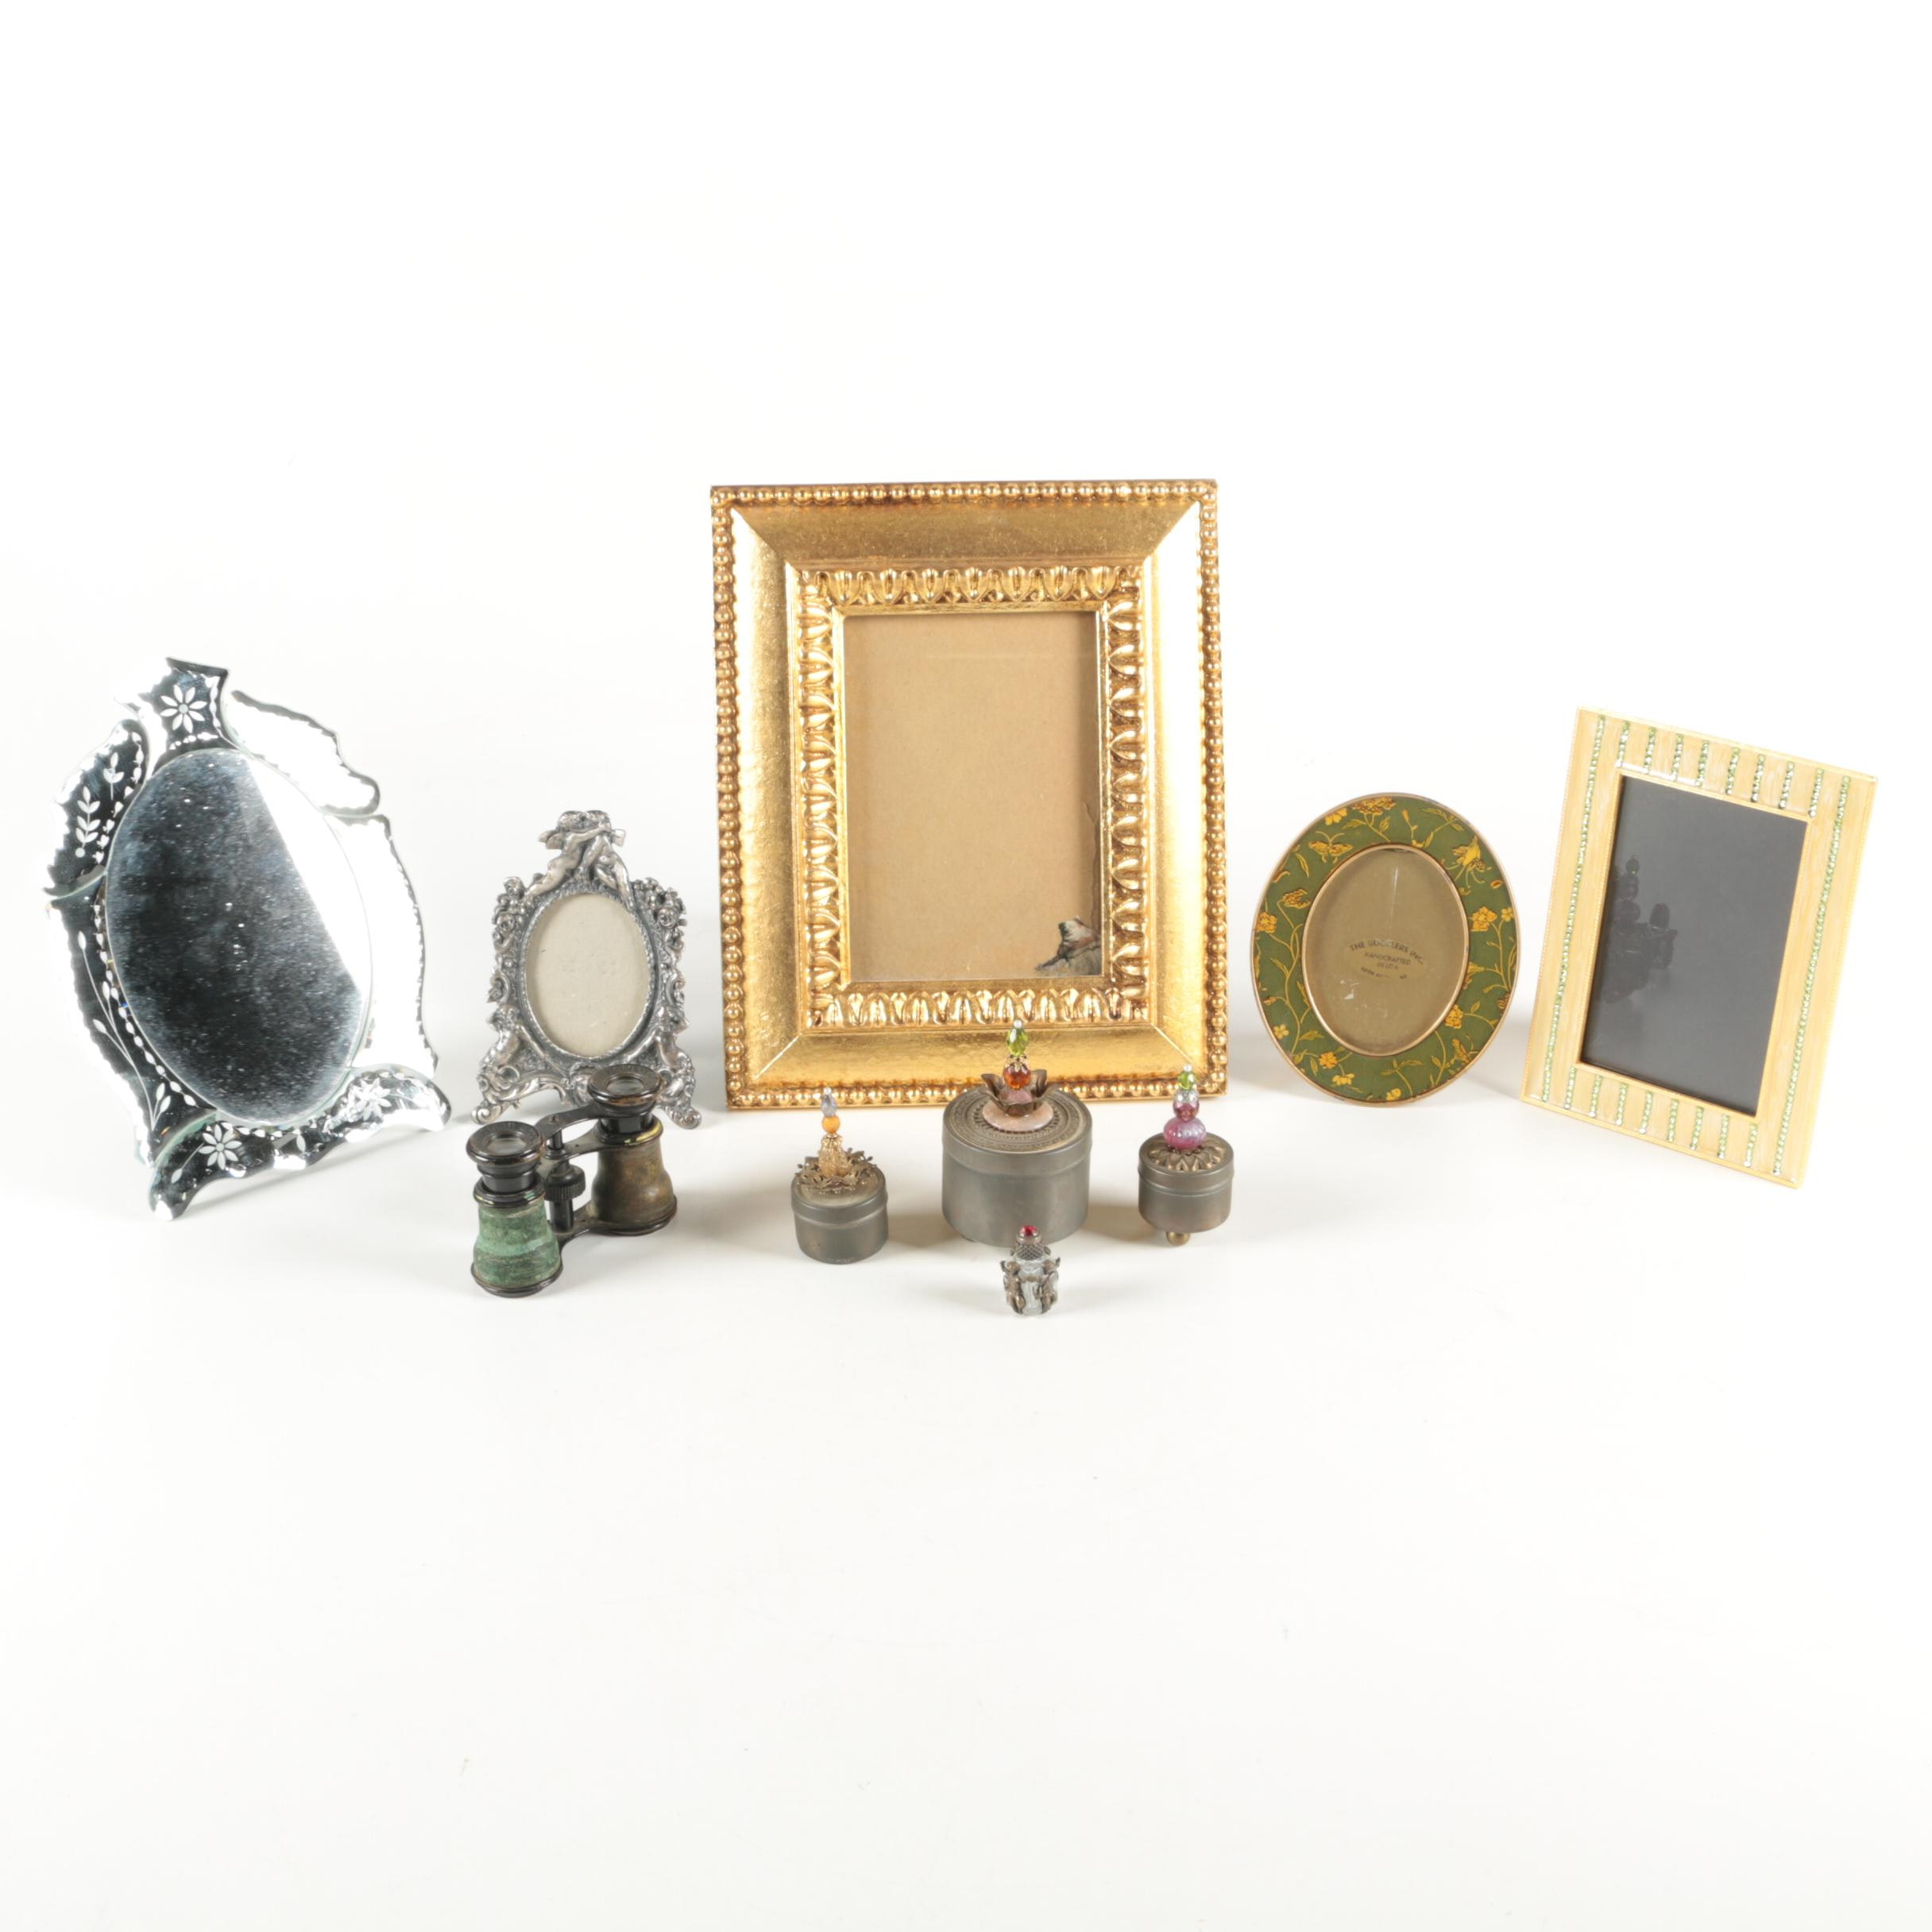 Colby Opera Glasses and Frames with Decorative Boxes